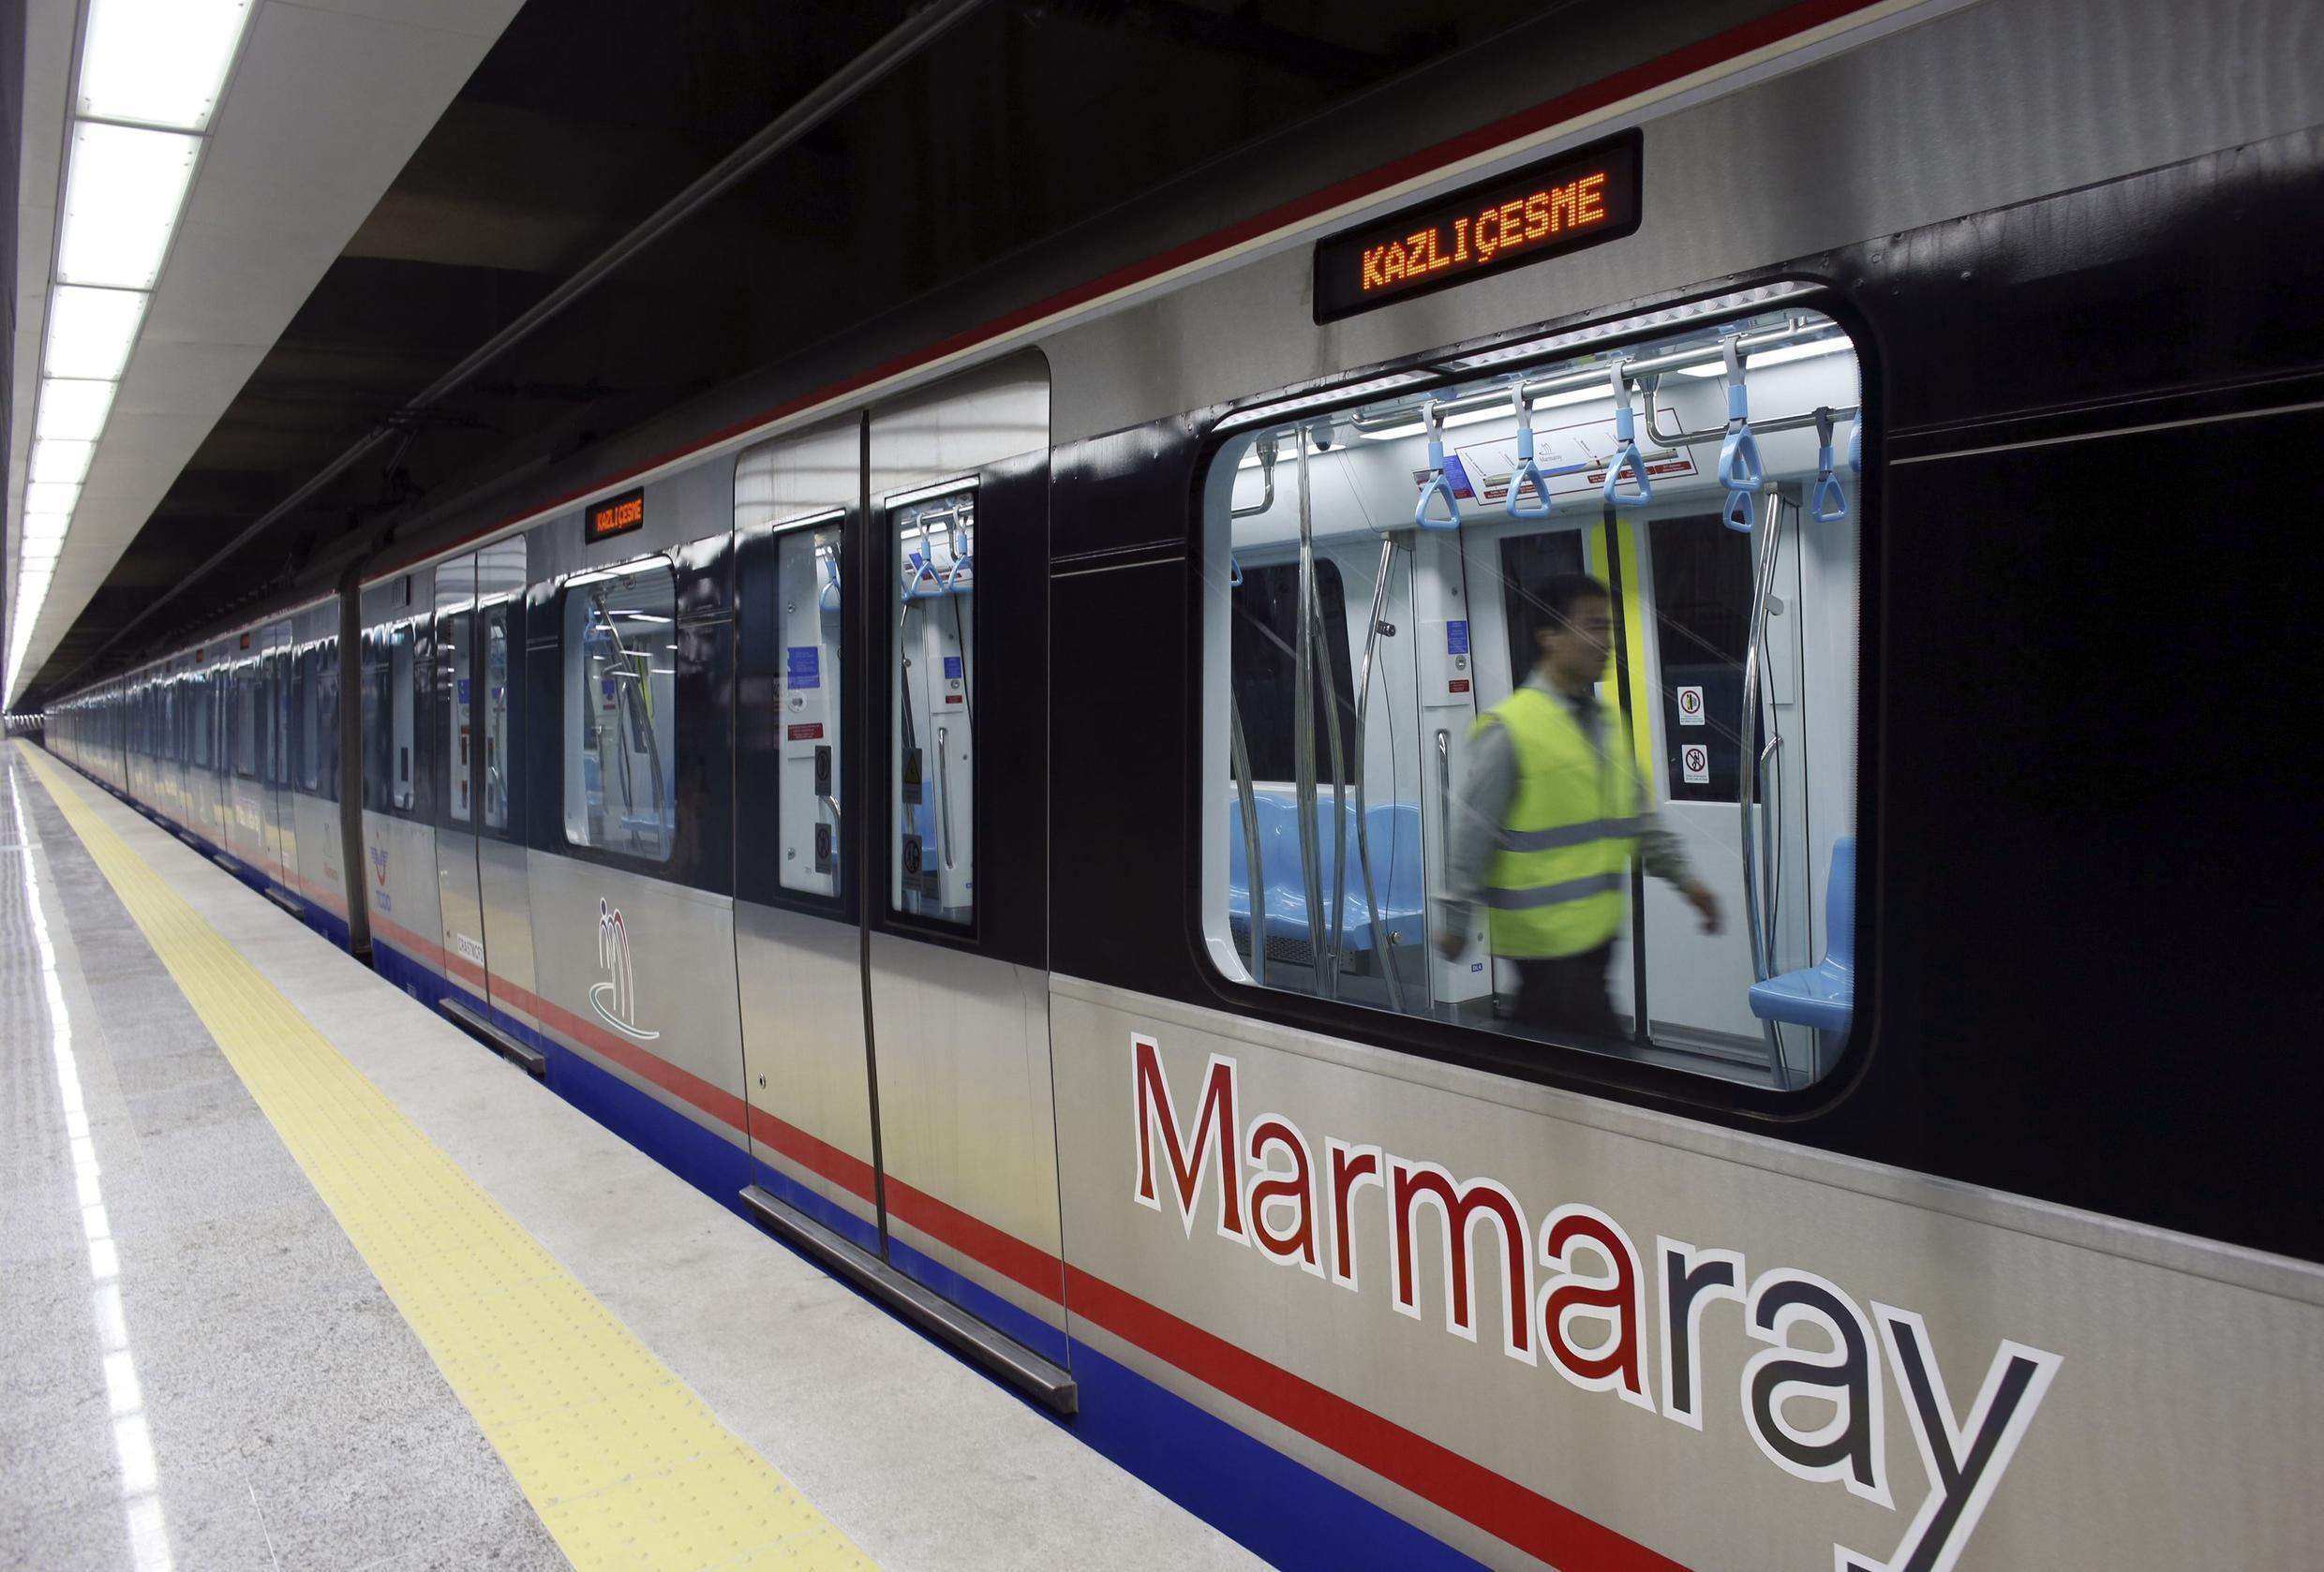 An engineer performs a last check on a train of Marmaray, a subway which links Europe with Asia some 60 metres below the Bosphorus Strait, in Istanbul